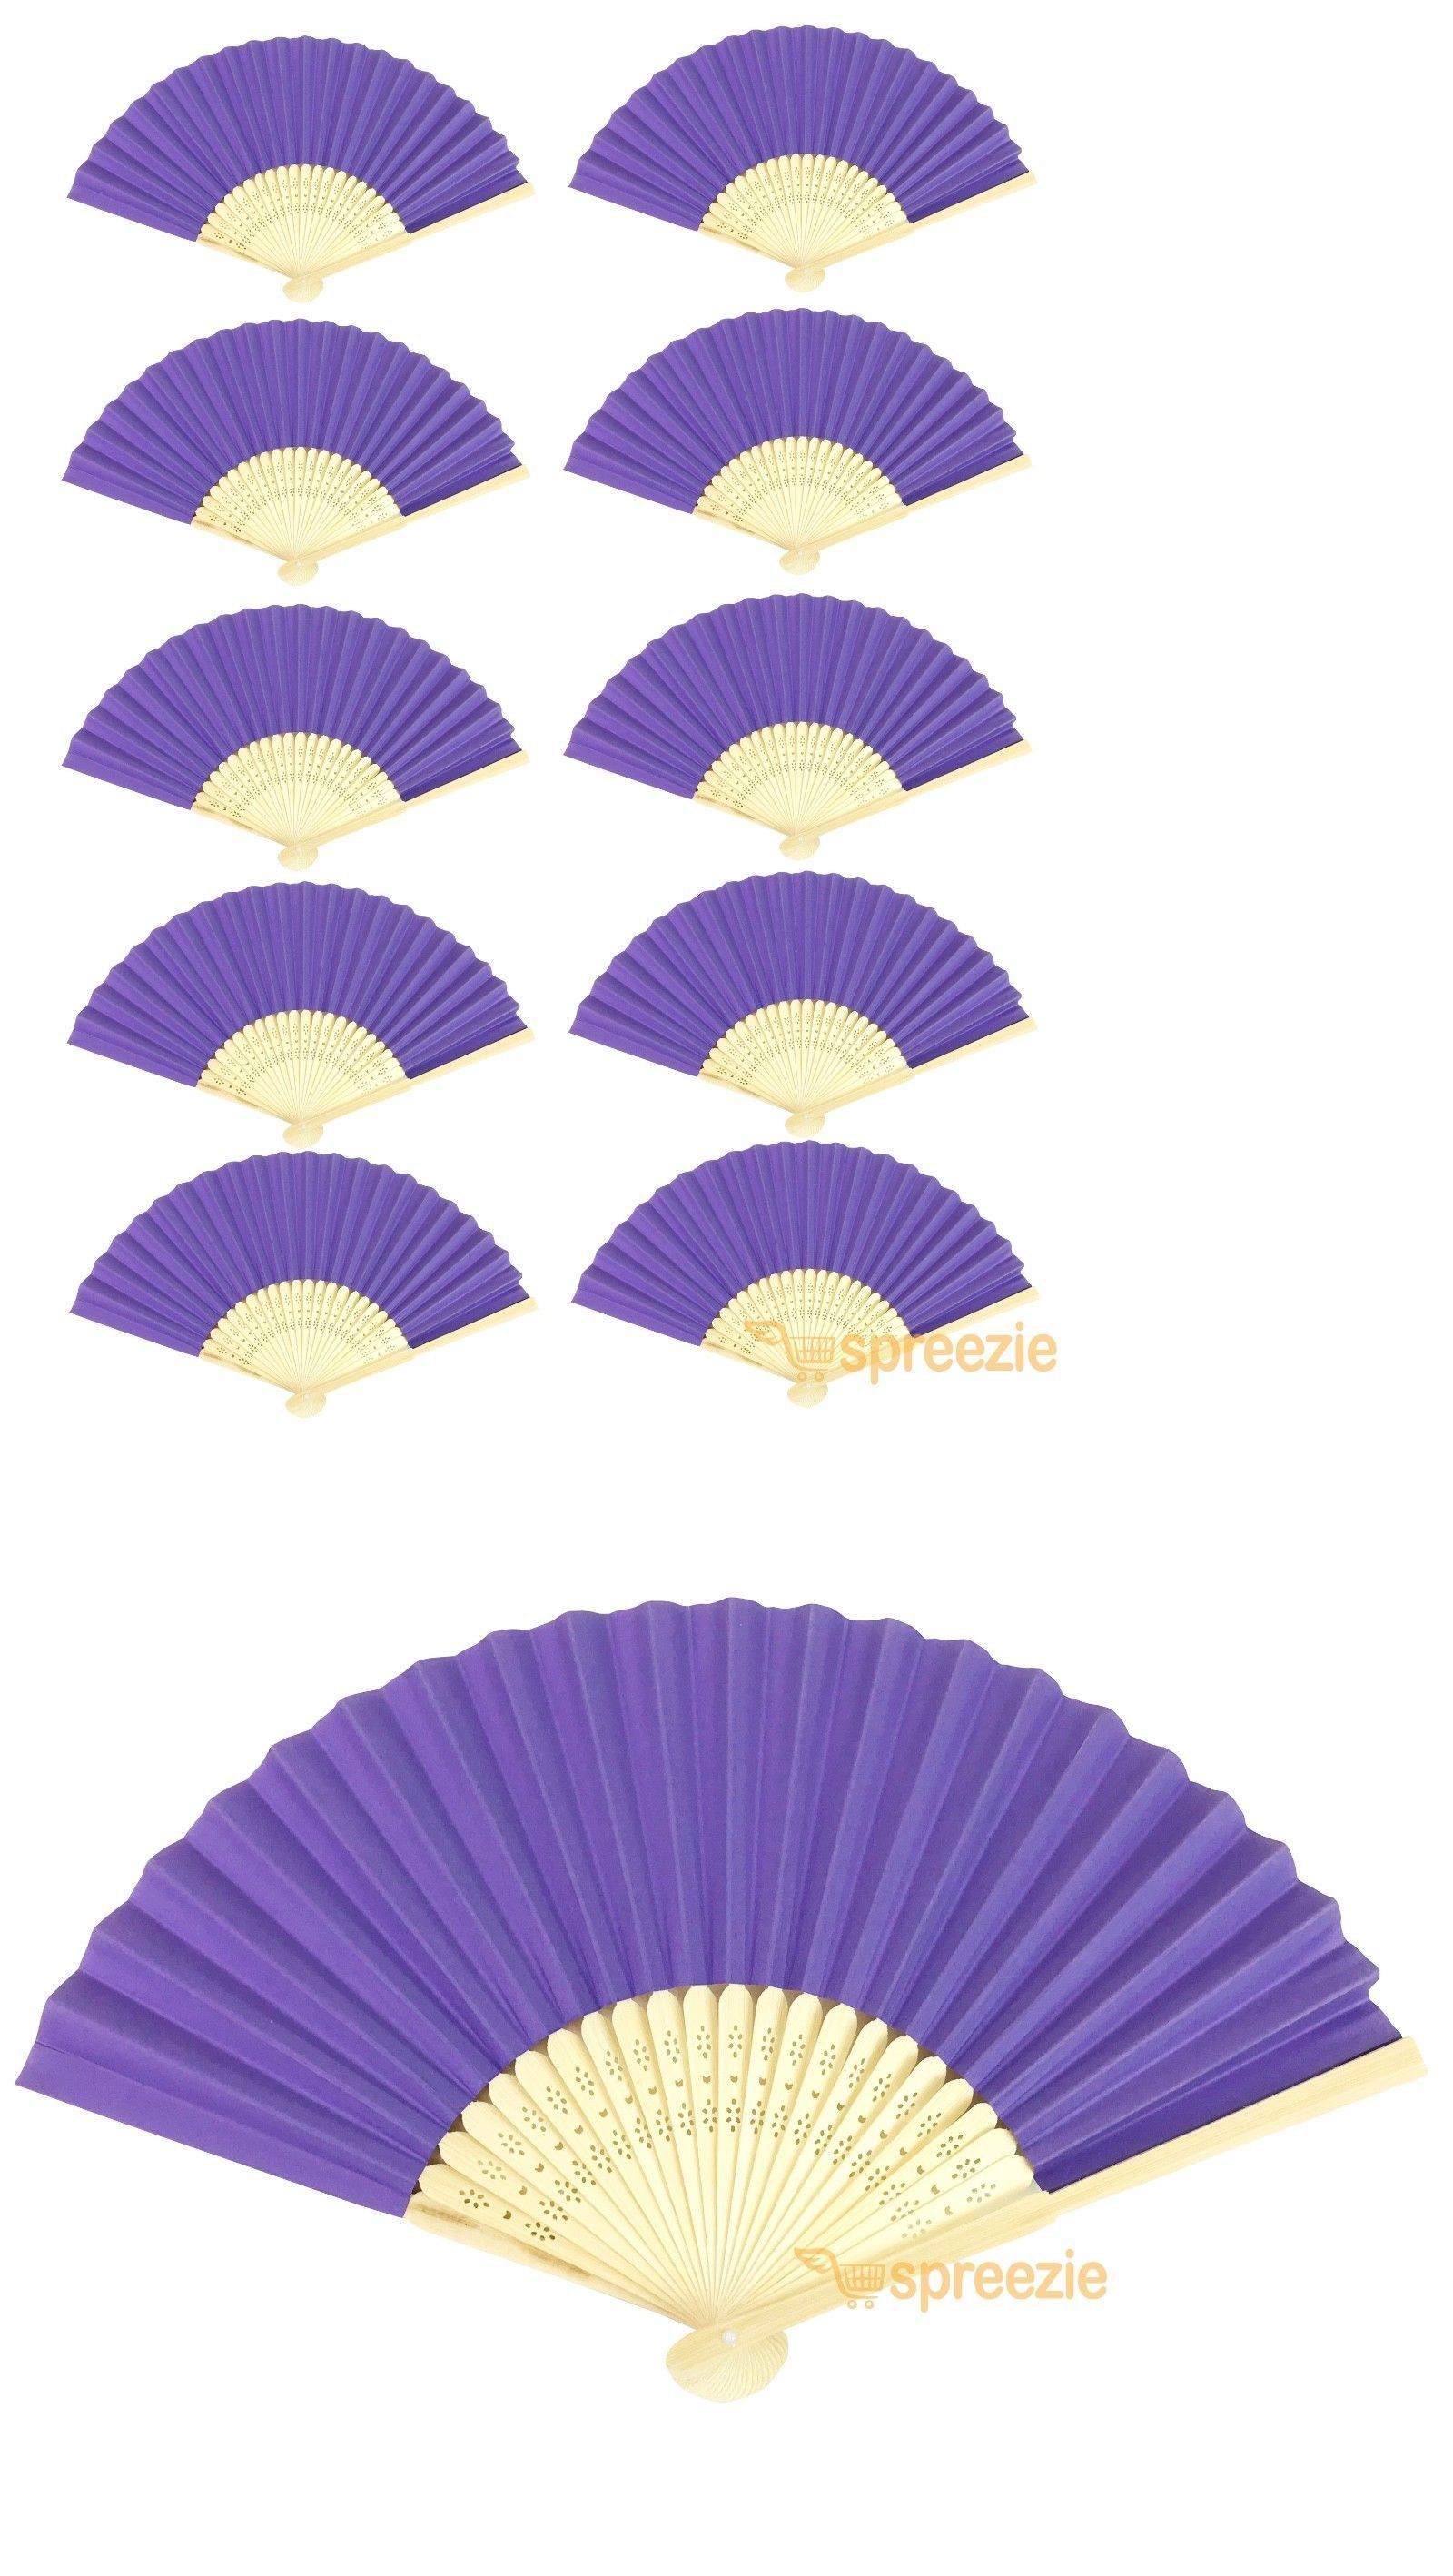 10 Pack Light Blue Paper Hand Fans Bamboo Chinese Folding Pocket Fan Decor New